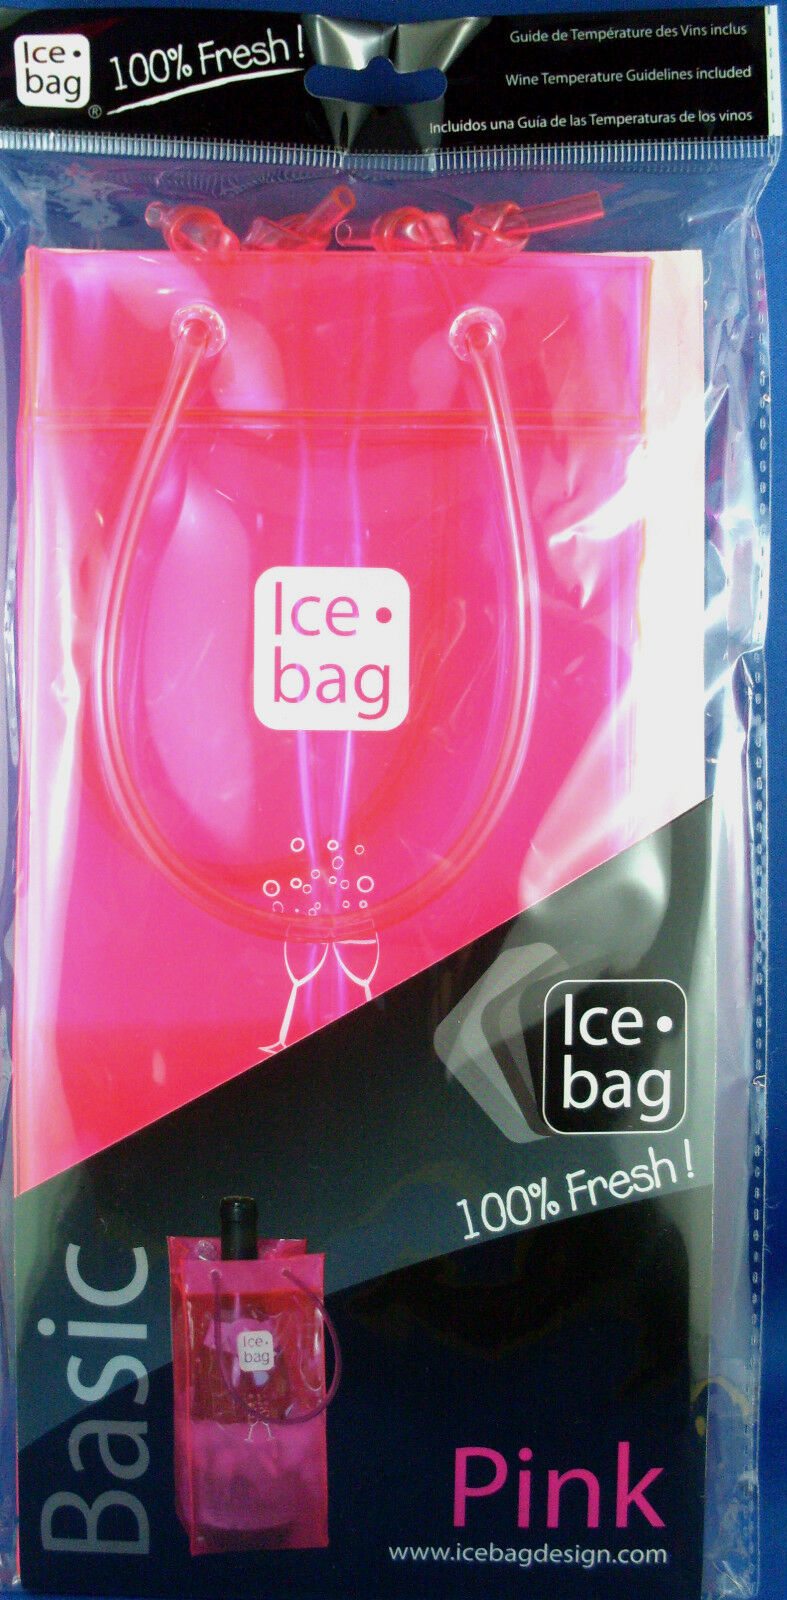 NEON PINK ICE BAG French Designed Gift BAG WINE COOLER New Sealed - In Australia